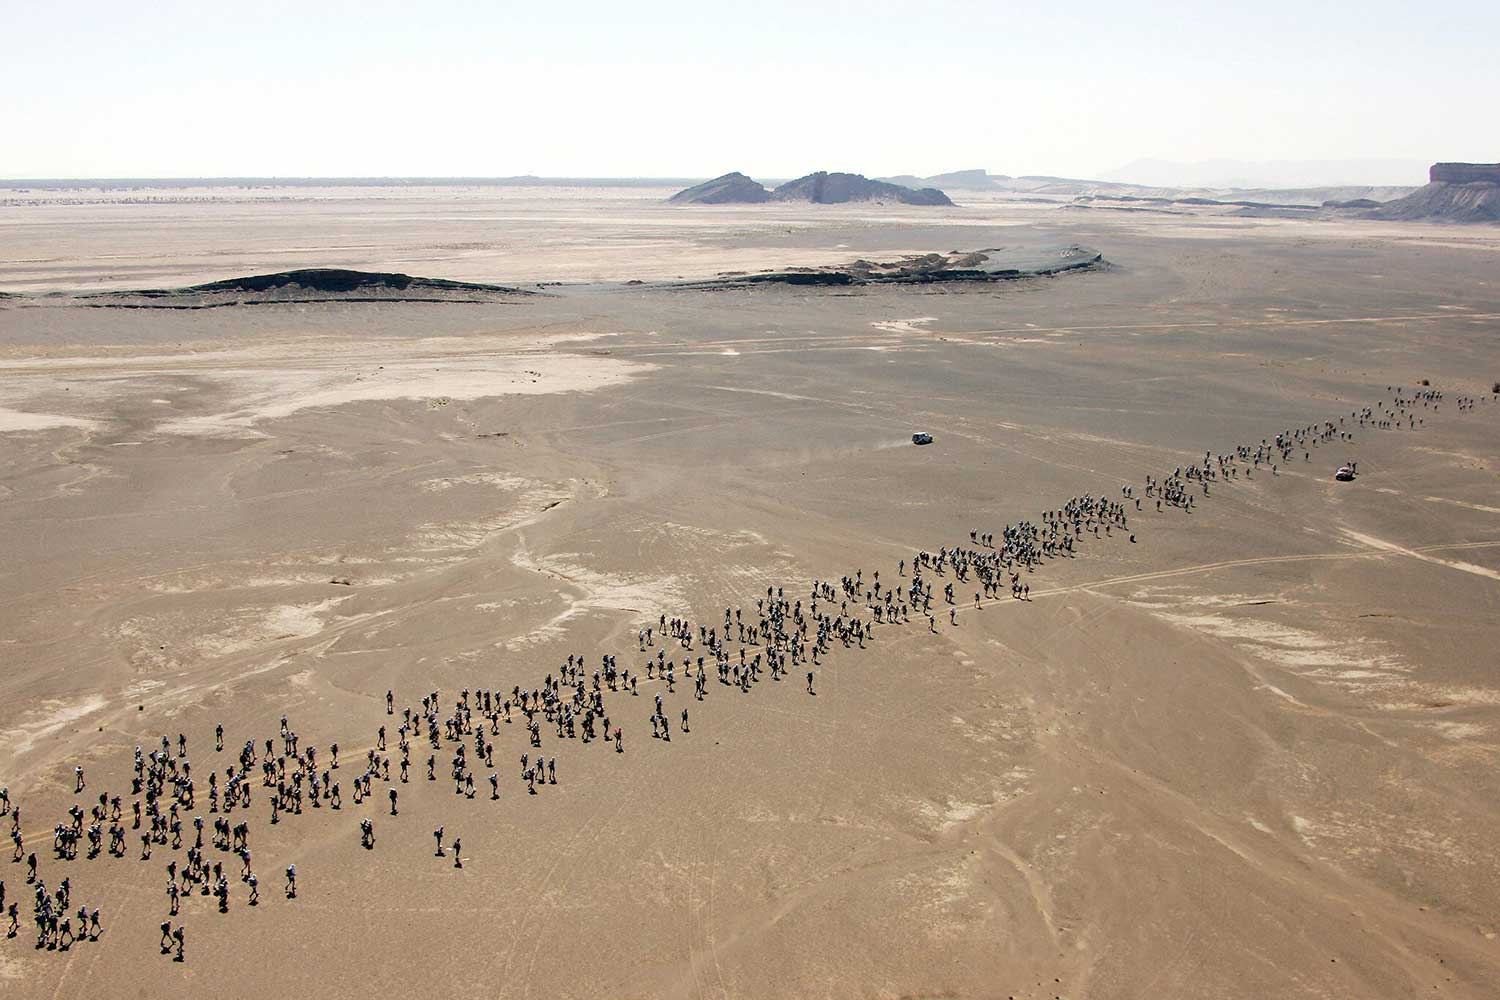 """In anticipation of the upcoming Marathon des Sables on April 4th, SI Edge takes a look back through the history of """"The Toughest Footrace on Earth."""""""